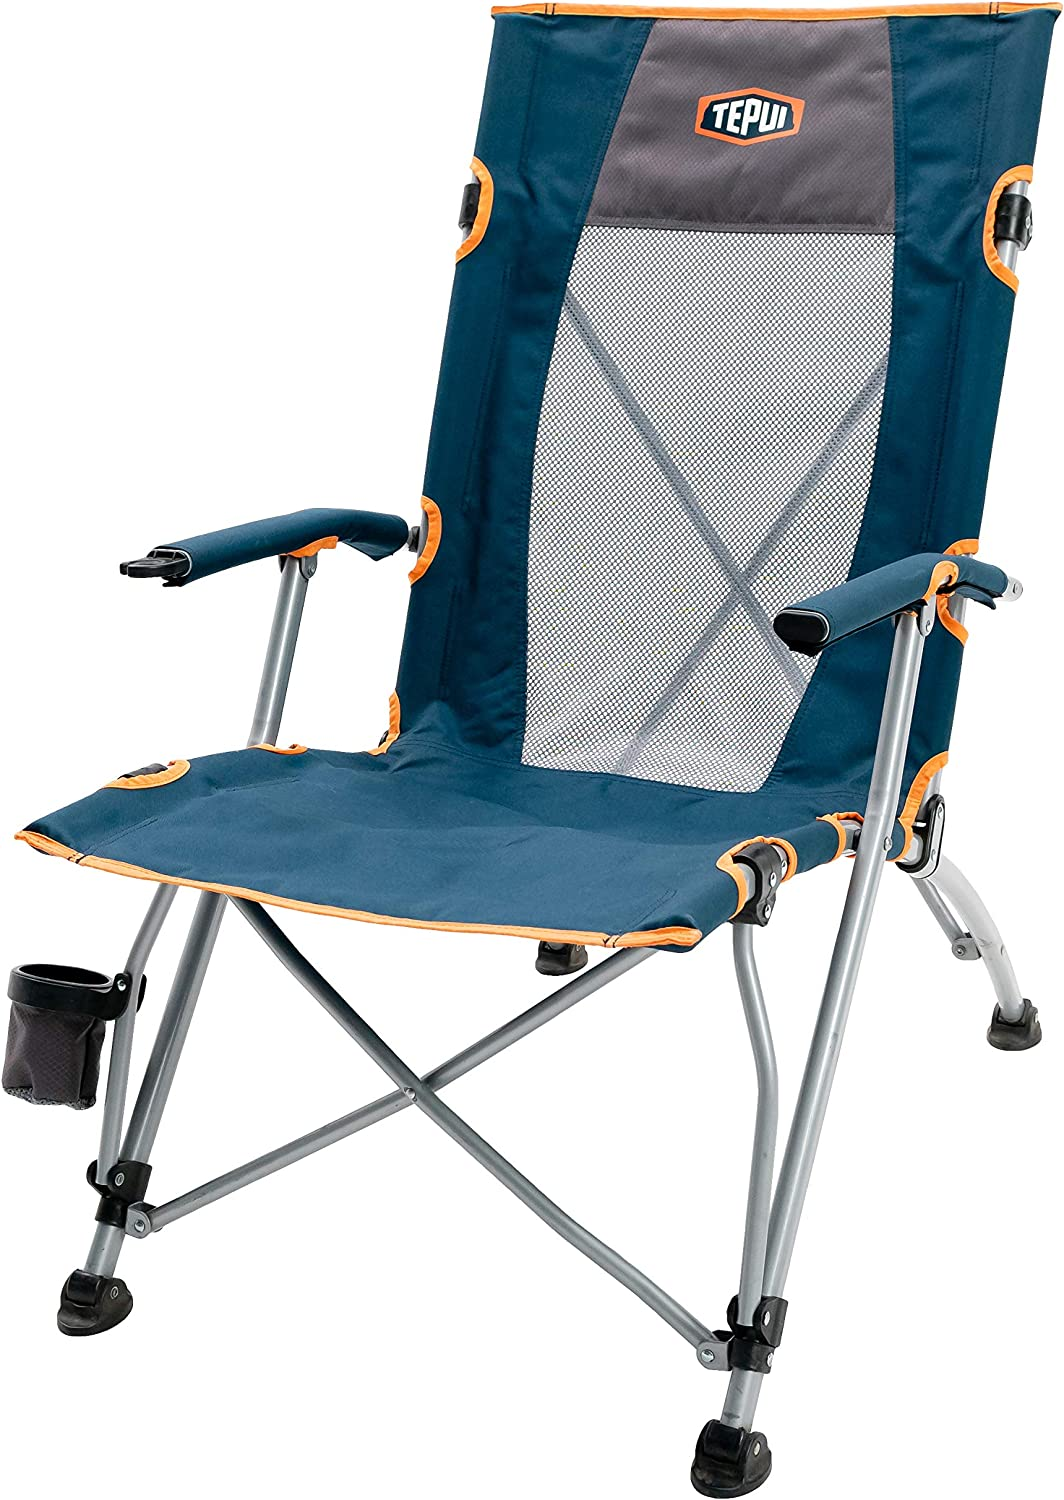 Tepui Multi size chair